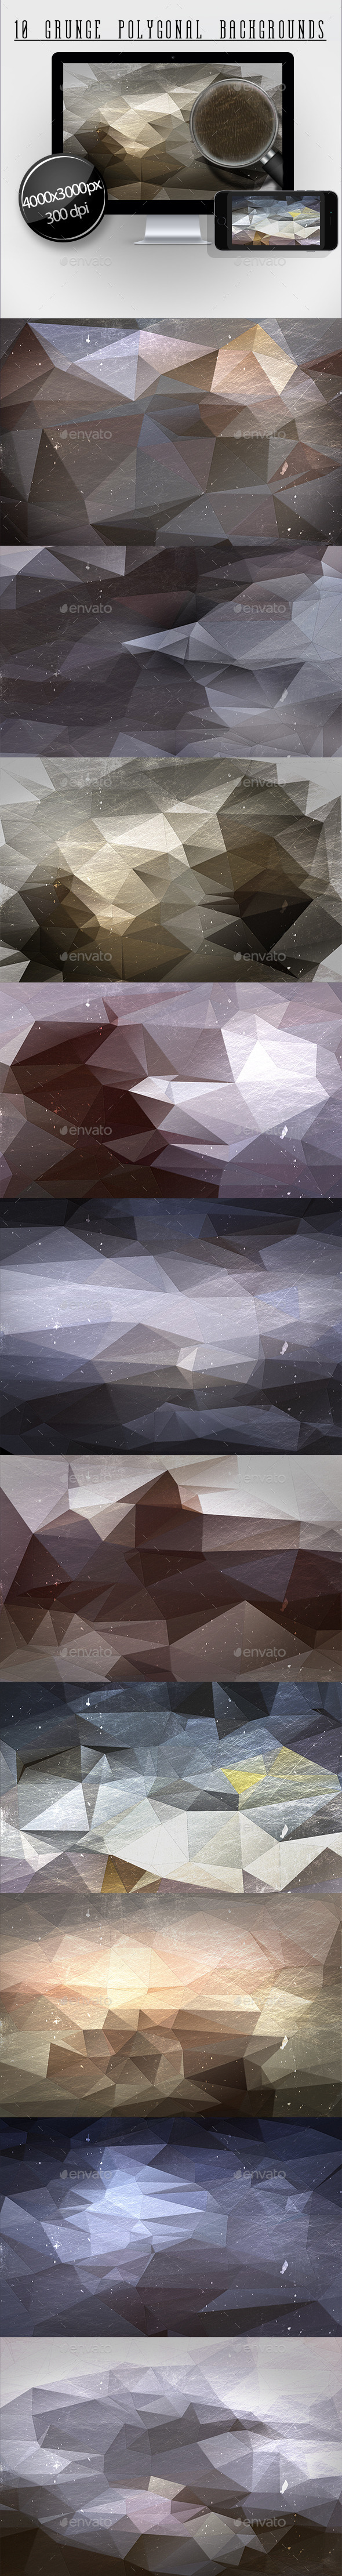 10 Grunge Polygonal Backgrounds